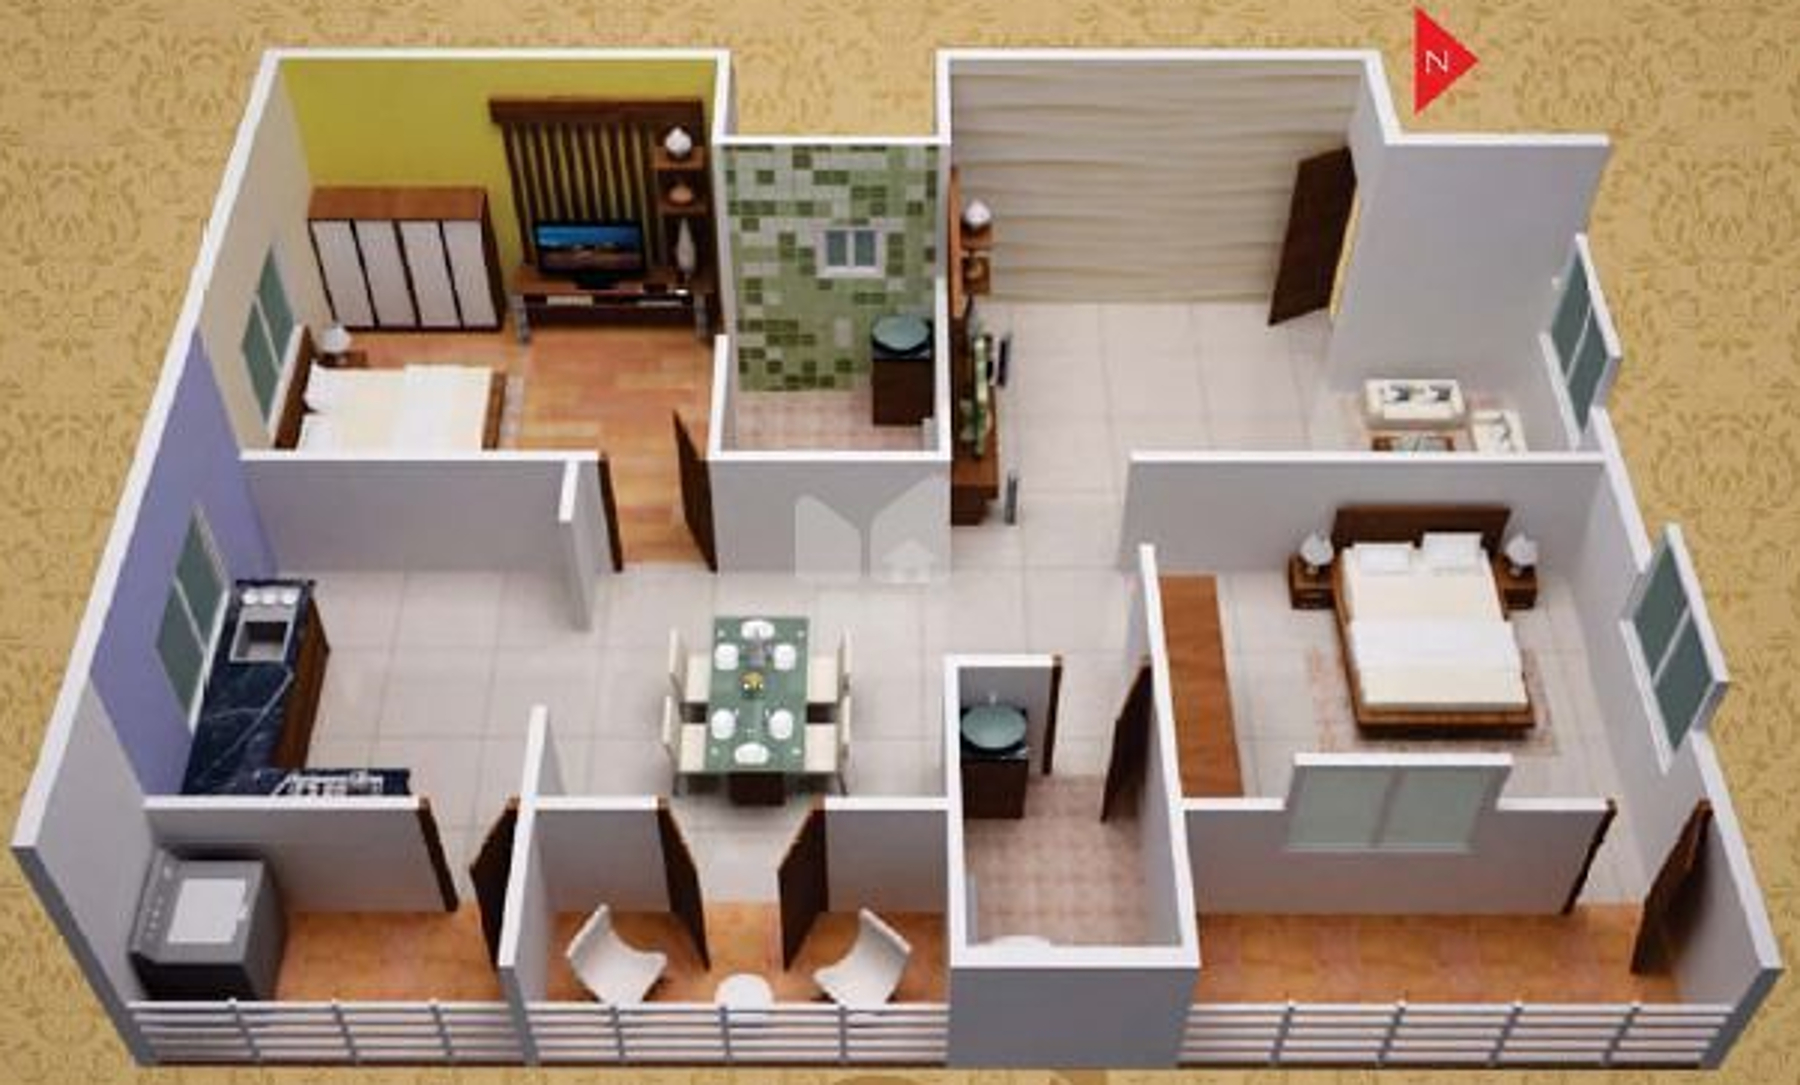 1260 sq ft 2 bhk 2t apartment for sale in sunshine builders silicon oasis whi. Black Bedroom Furniture Sets. Home Design Ideas